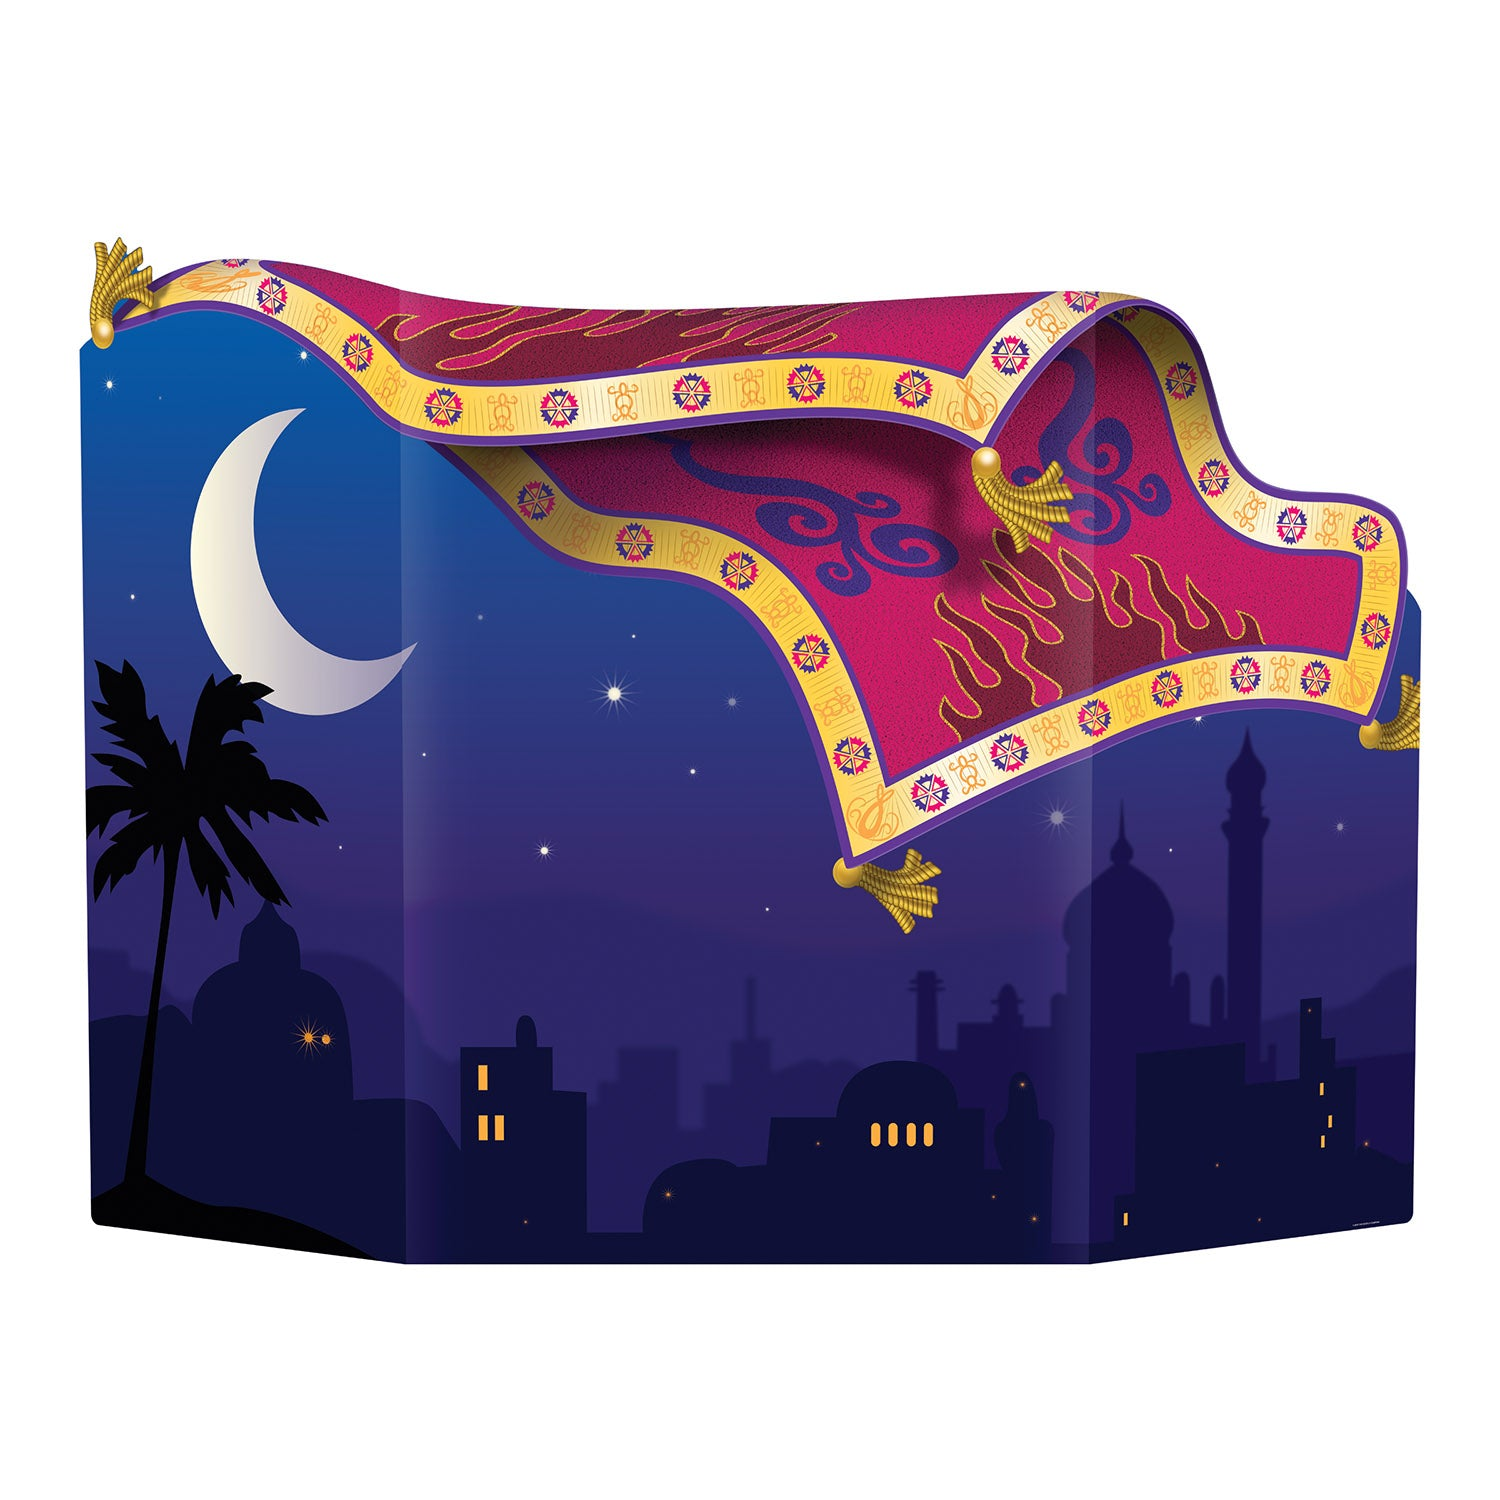 Magic Carpet Photo Prop by Beistle - Arabian Nights Theme Decorations